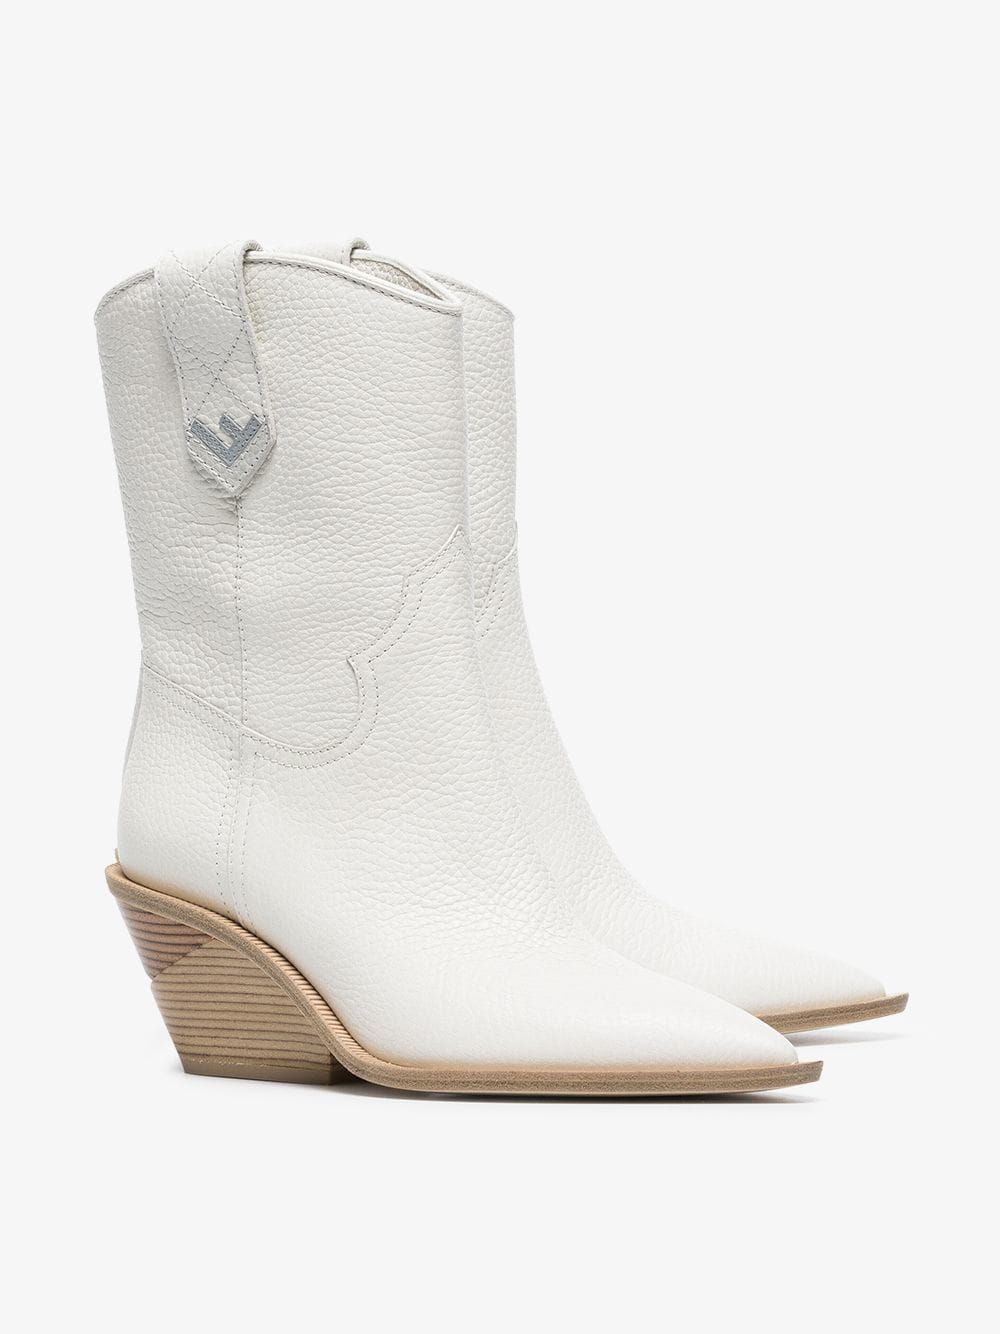 795b576476 White Cutwalk 60 Leather Boots | A heels 1 shoes women | Leather ...